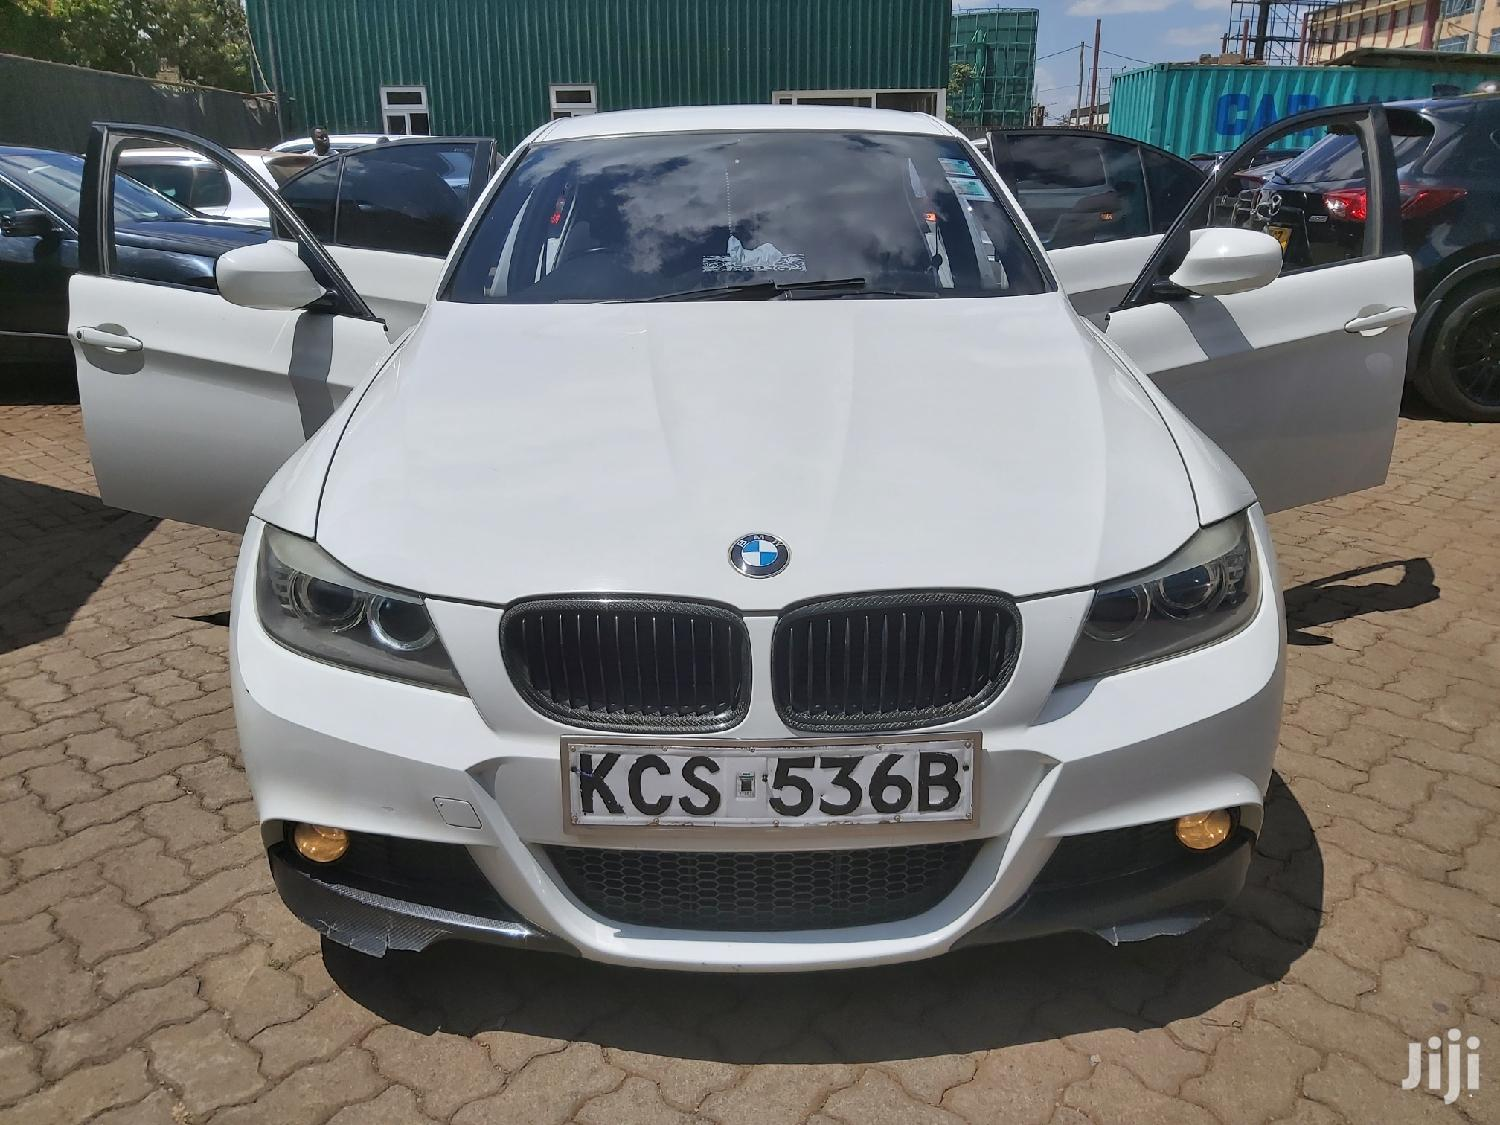 BMW 320i 2011 White | Cars for sale in Kilimani, Nairobi, Kenya